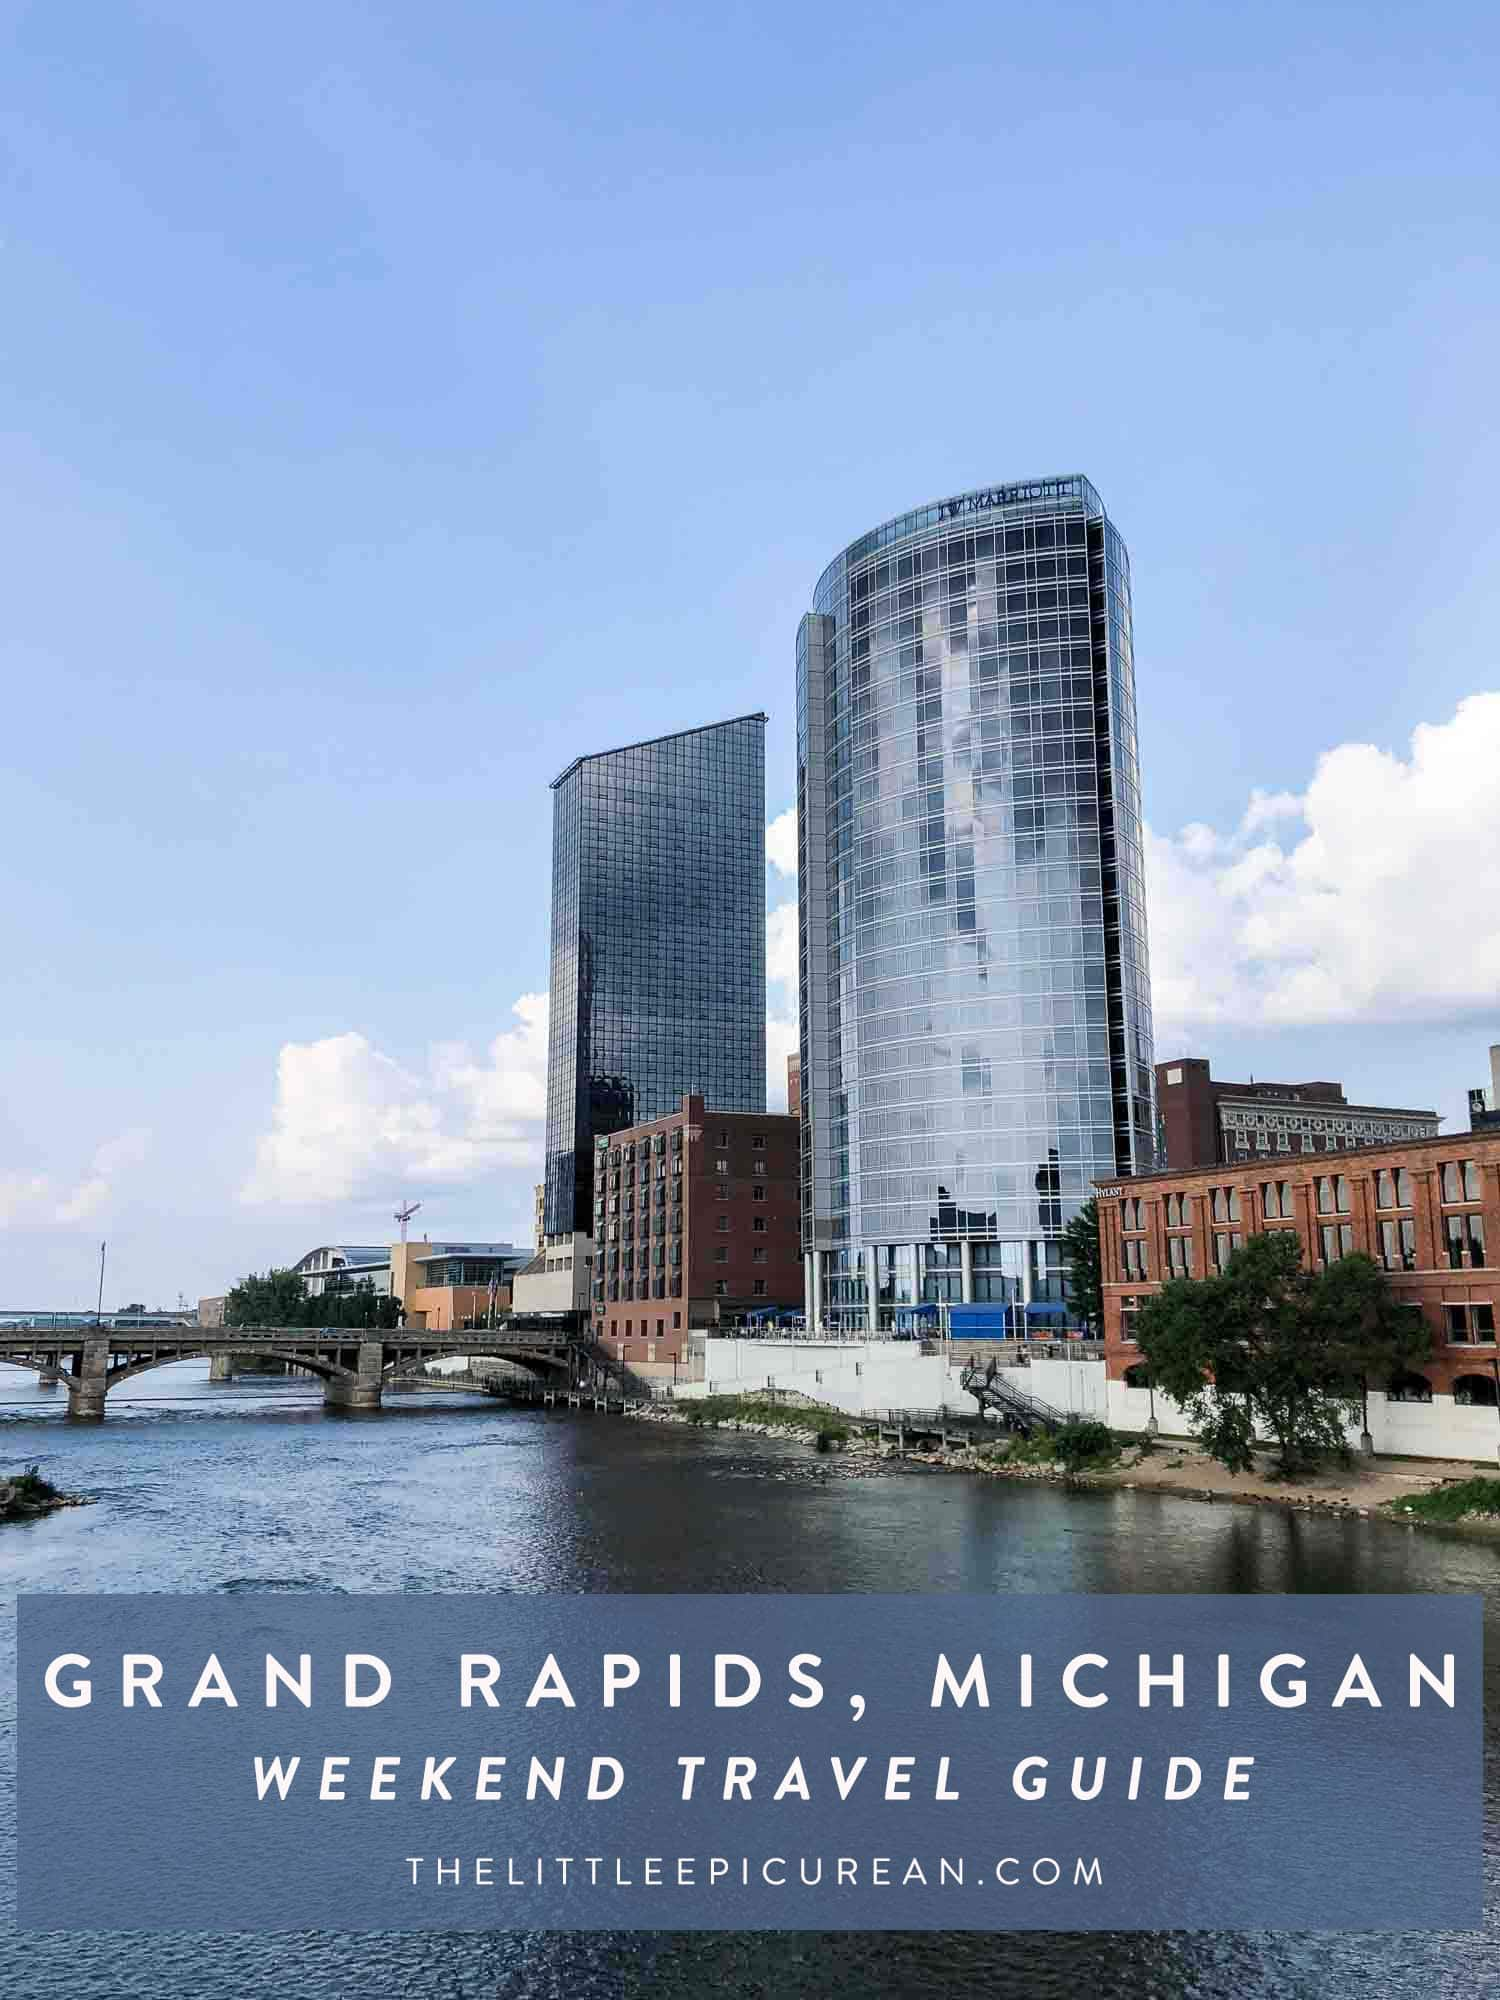 Grand Rapids Weekend Travel Guide